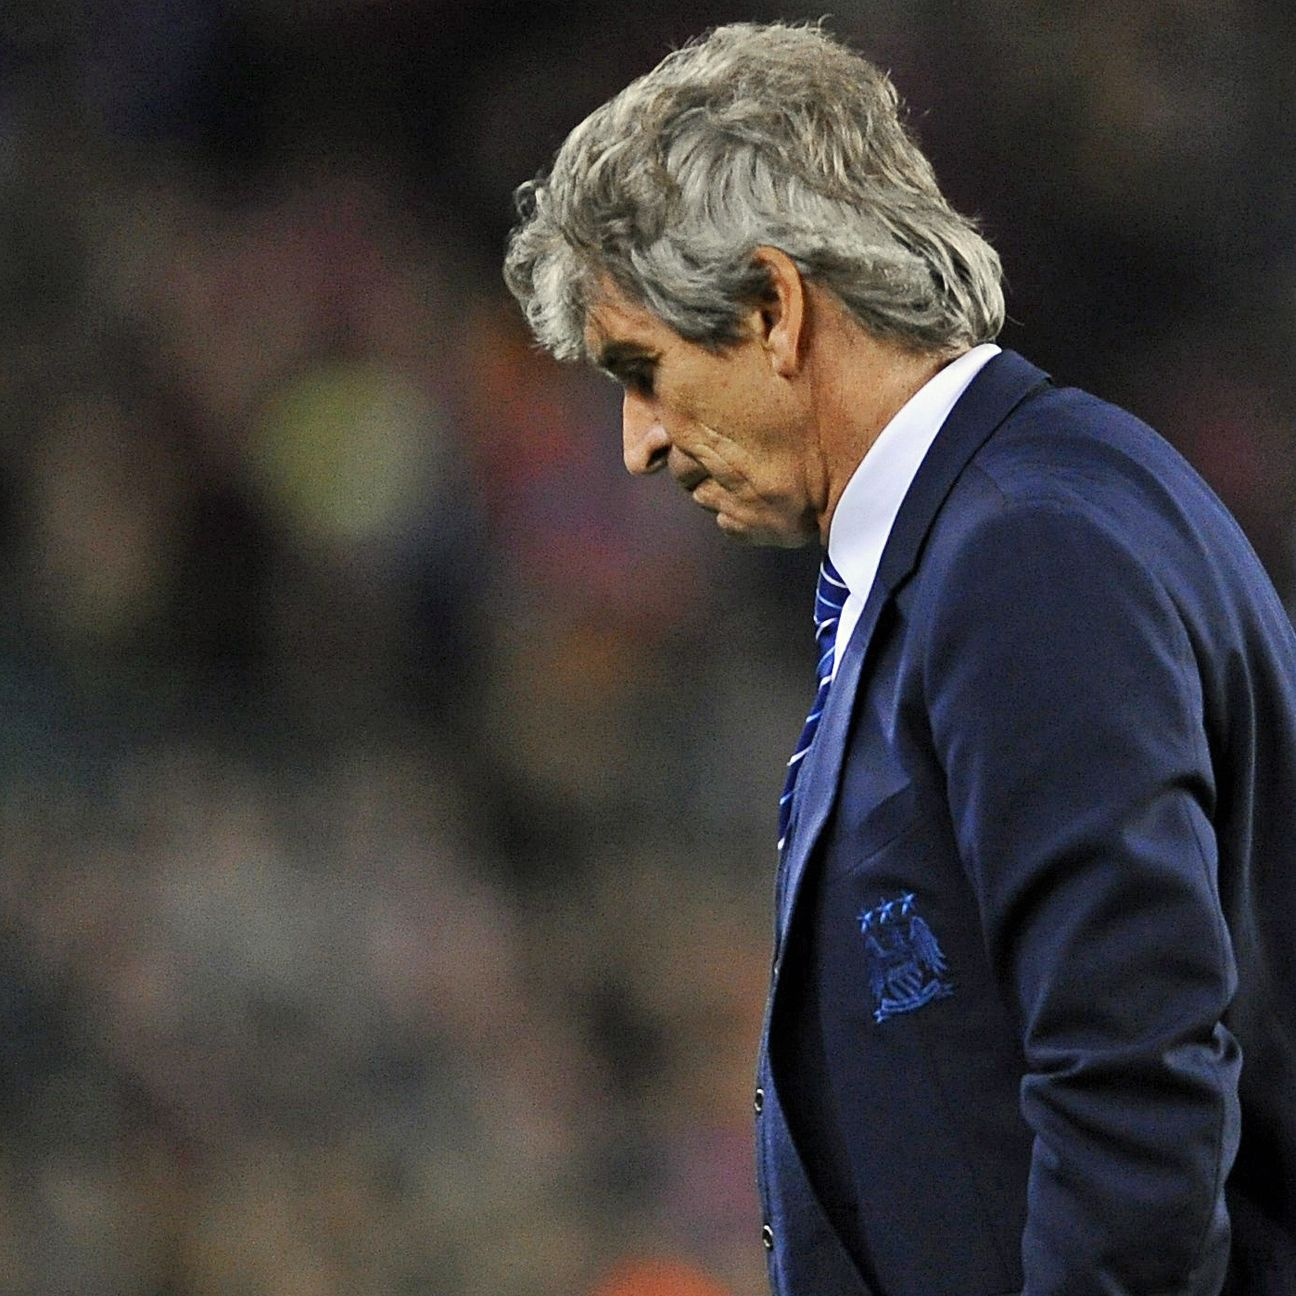 The Financial Fair Play regulations imposed by UEFA on Manchester City during 2014-15 made for a more difficult Champions League campaign for Manuel Pellegrini's side.